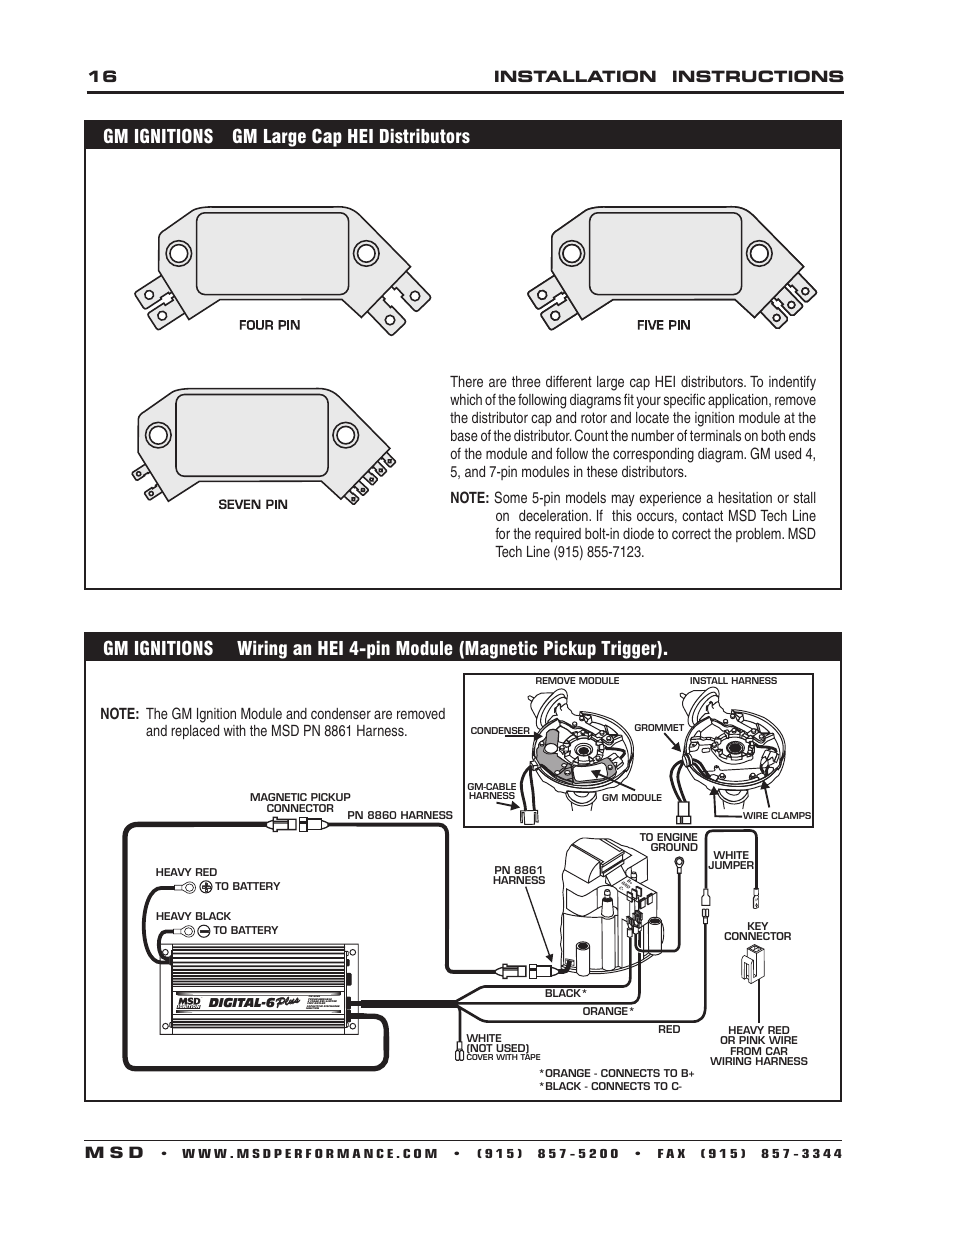 msd 6520 digital 6 plus ignition control installation page16 gm ignitions gm large cap hei distributors, 16 installation msd hei distributor wiring diagram at soozxer.org